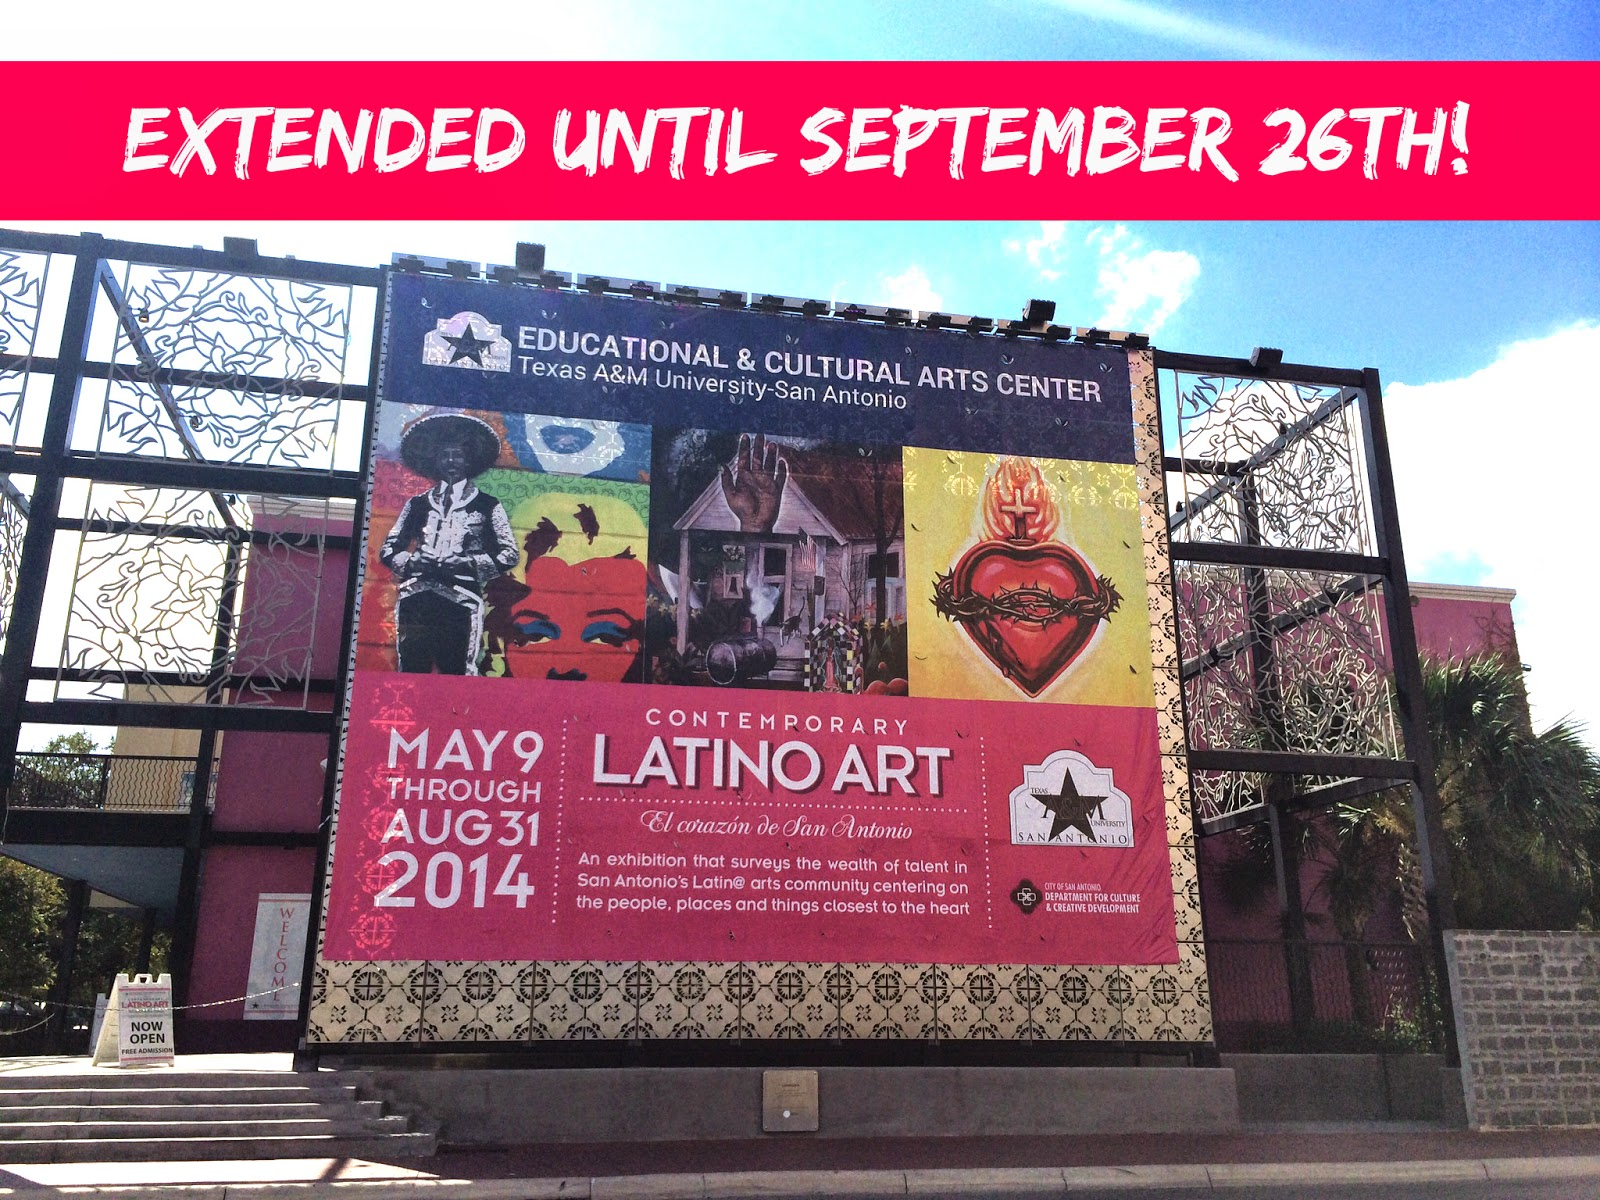 Contemporary Latino Art Exhibit in San Antonio, Texas - TAMU ECAC